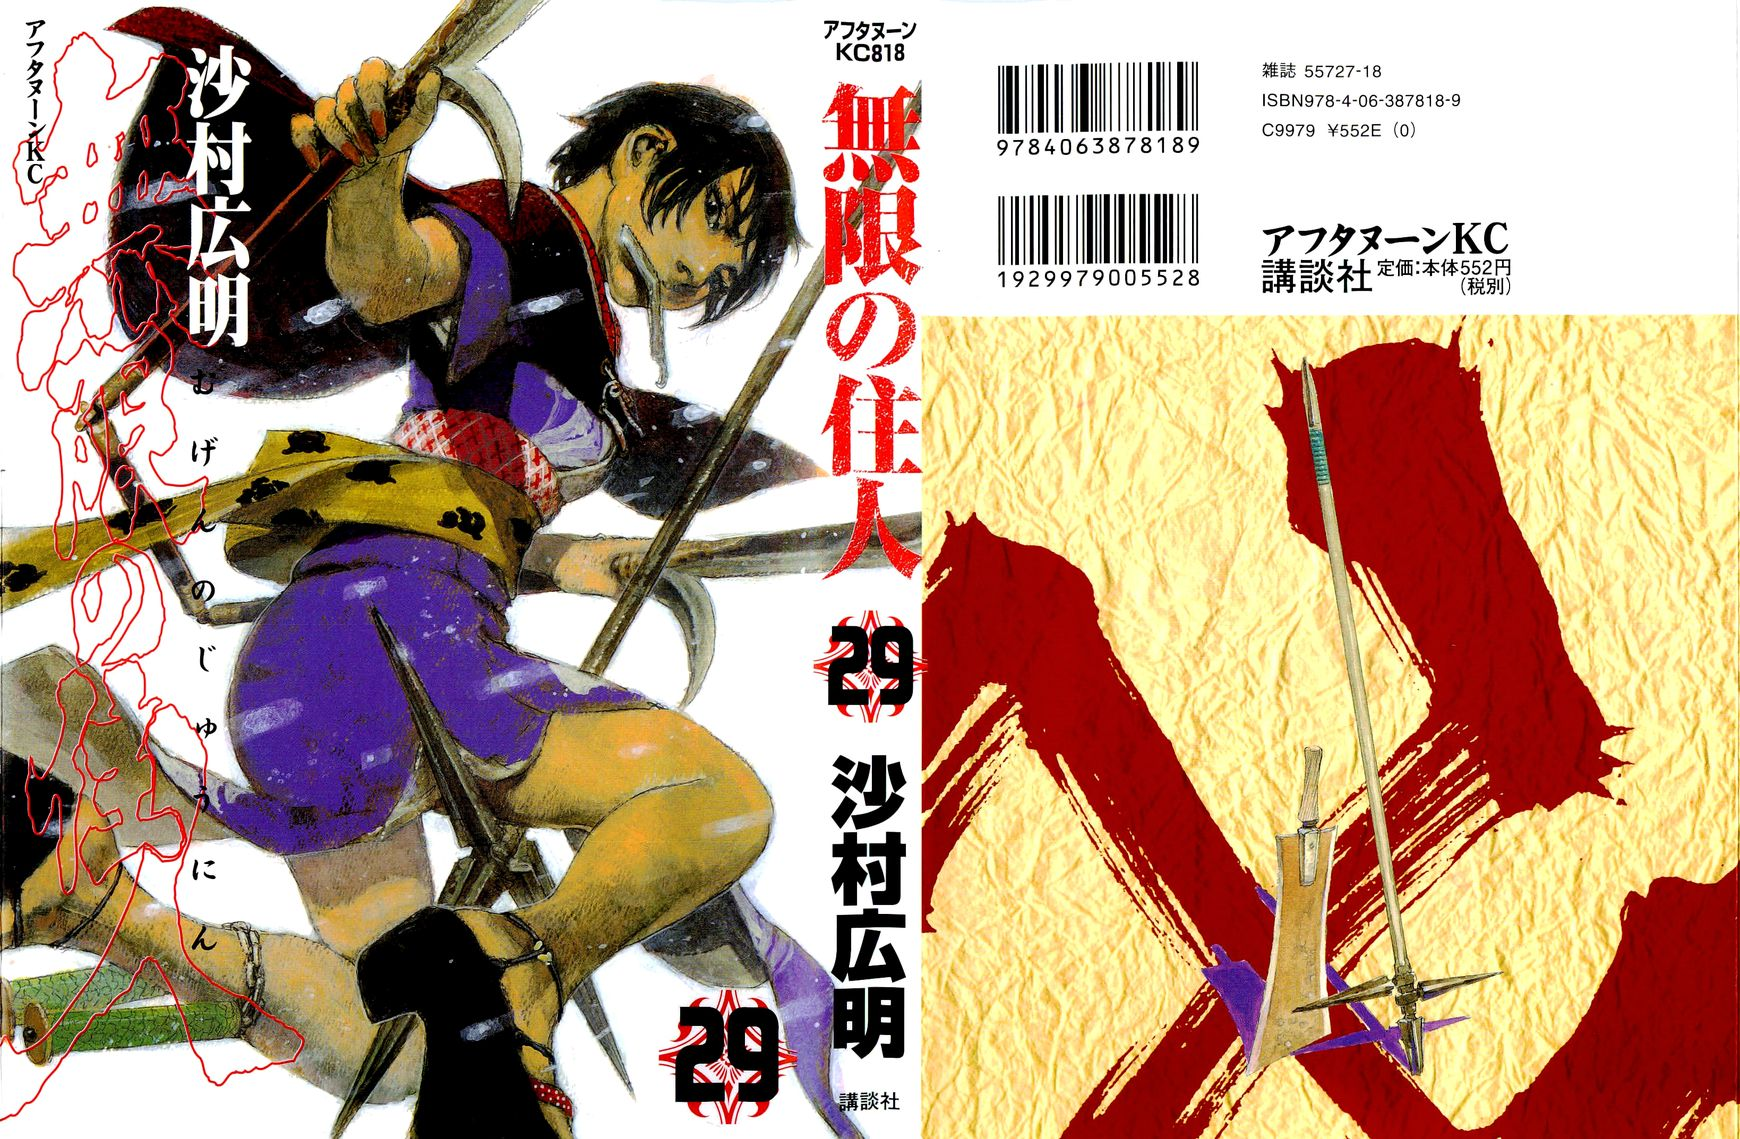 Blade of the Immortal 204 Page 1